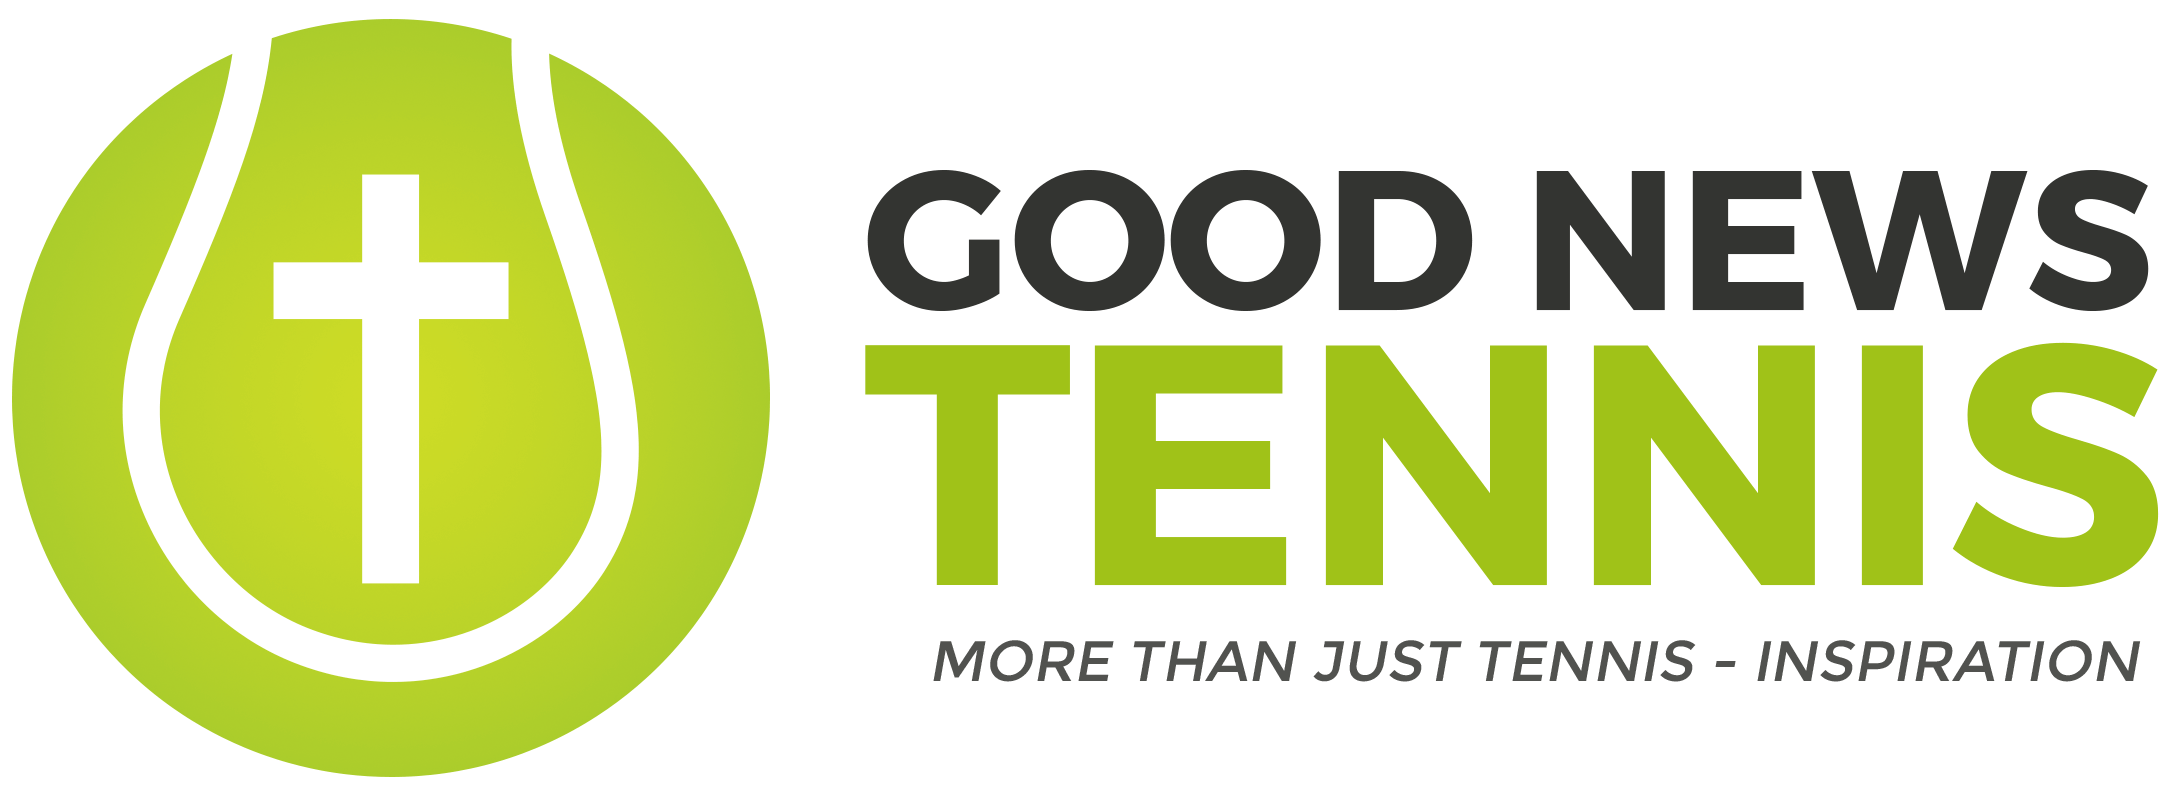 Good News Tennis